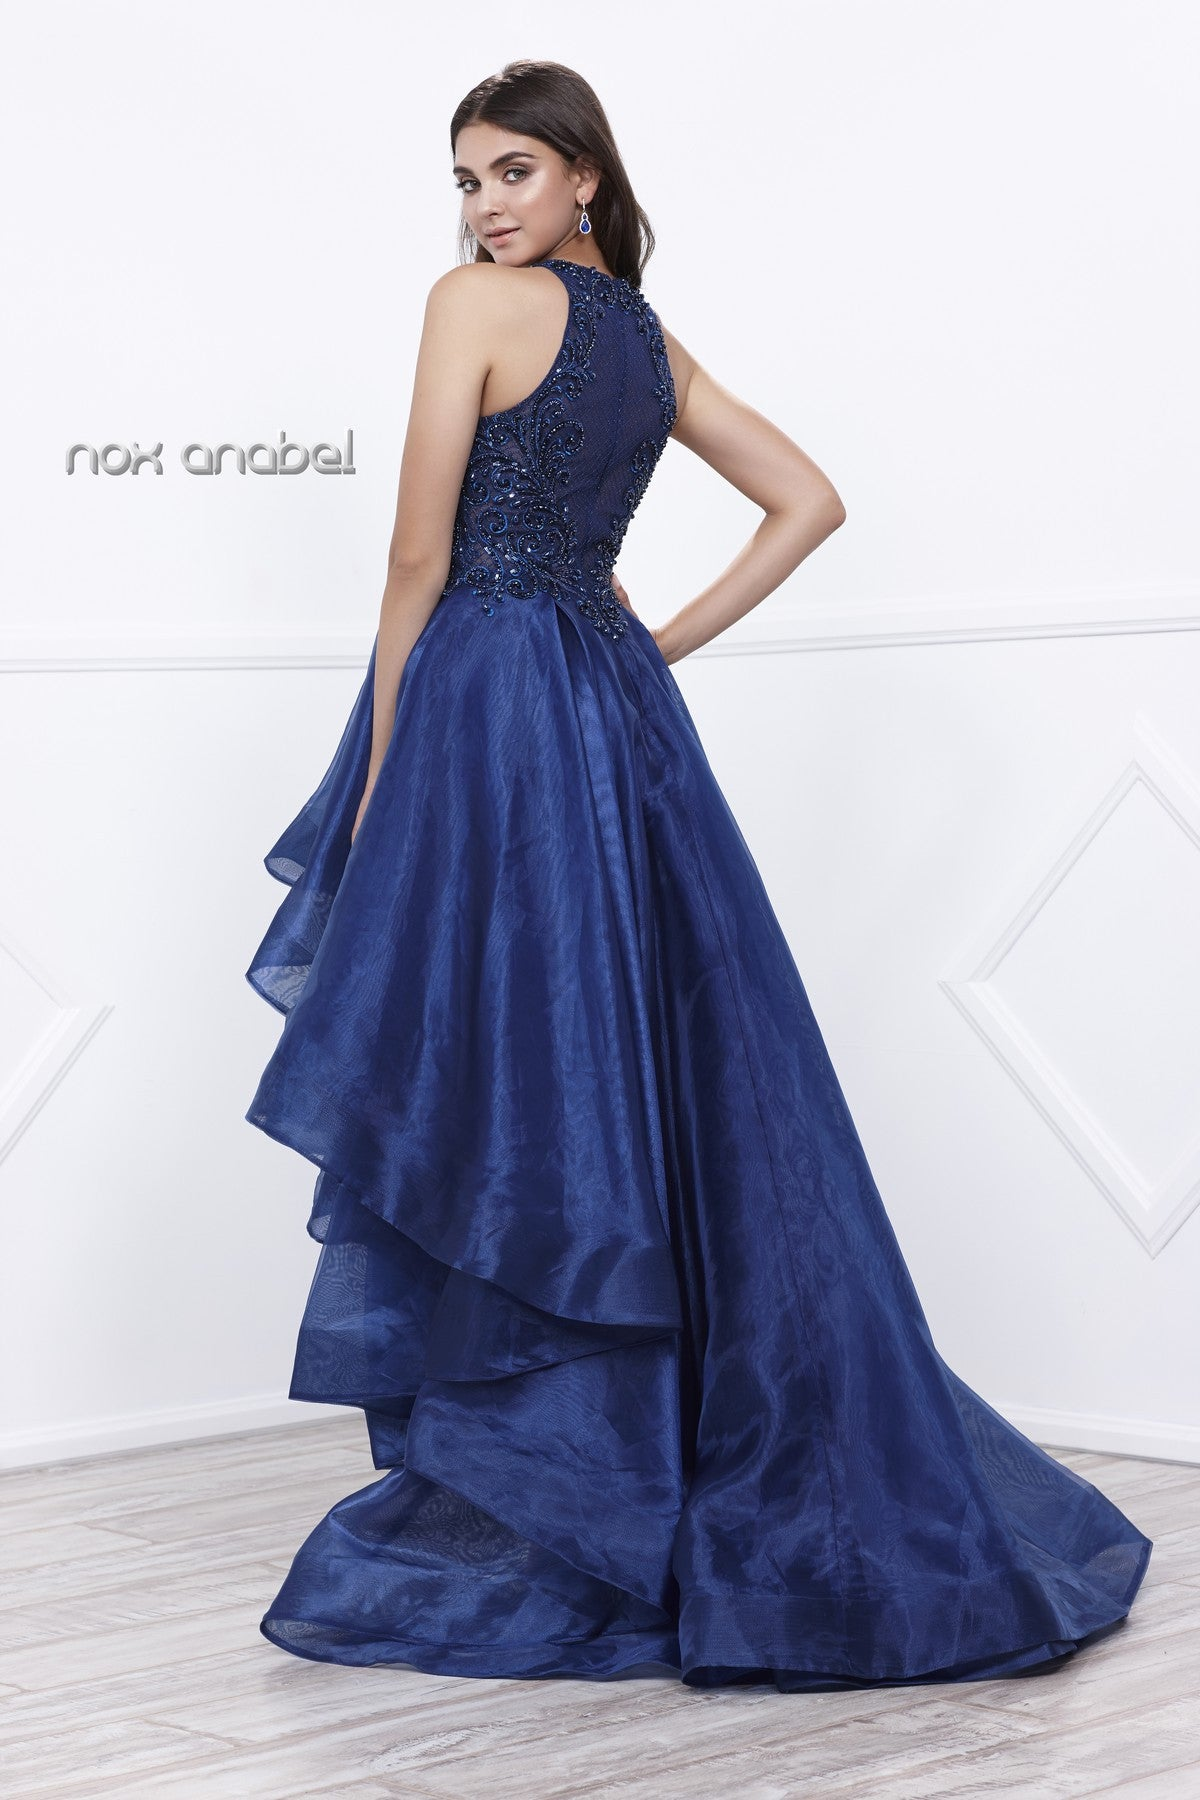 445125ac5f9 ... Navy Blue High-Low Prom Dress with Bead Applique Bodice and Train ...